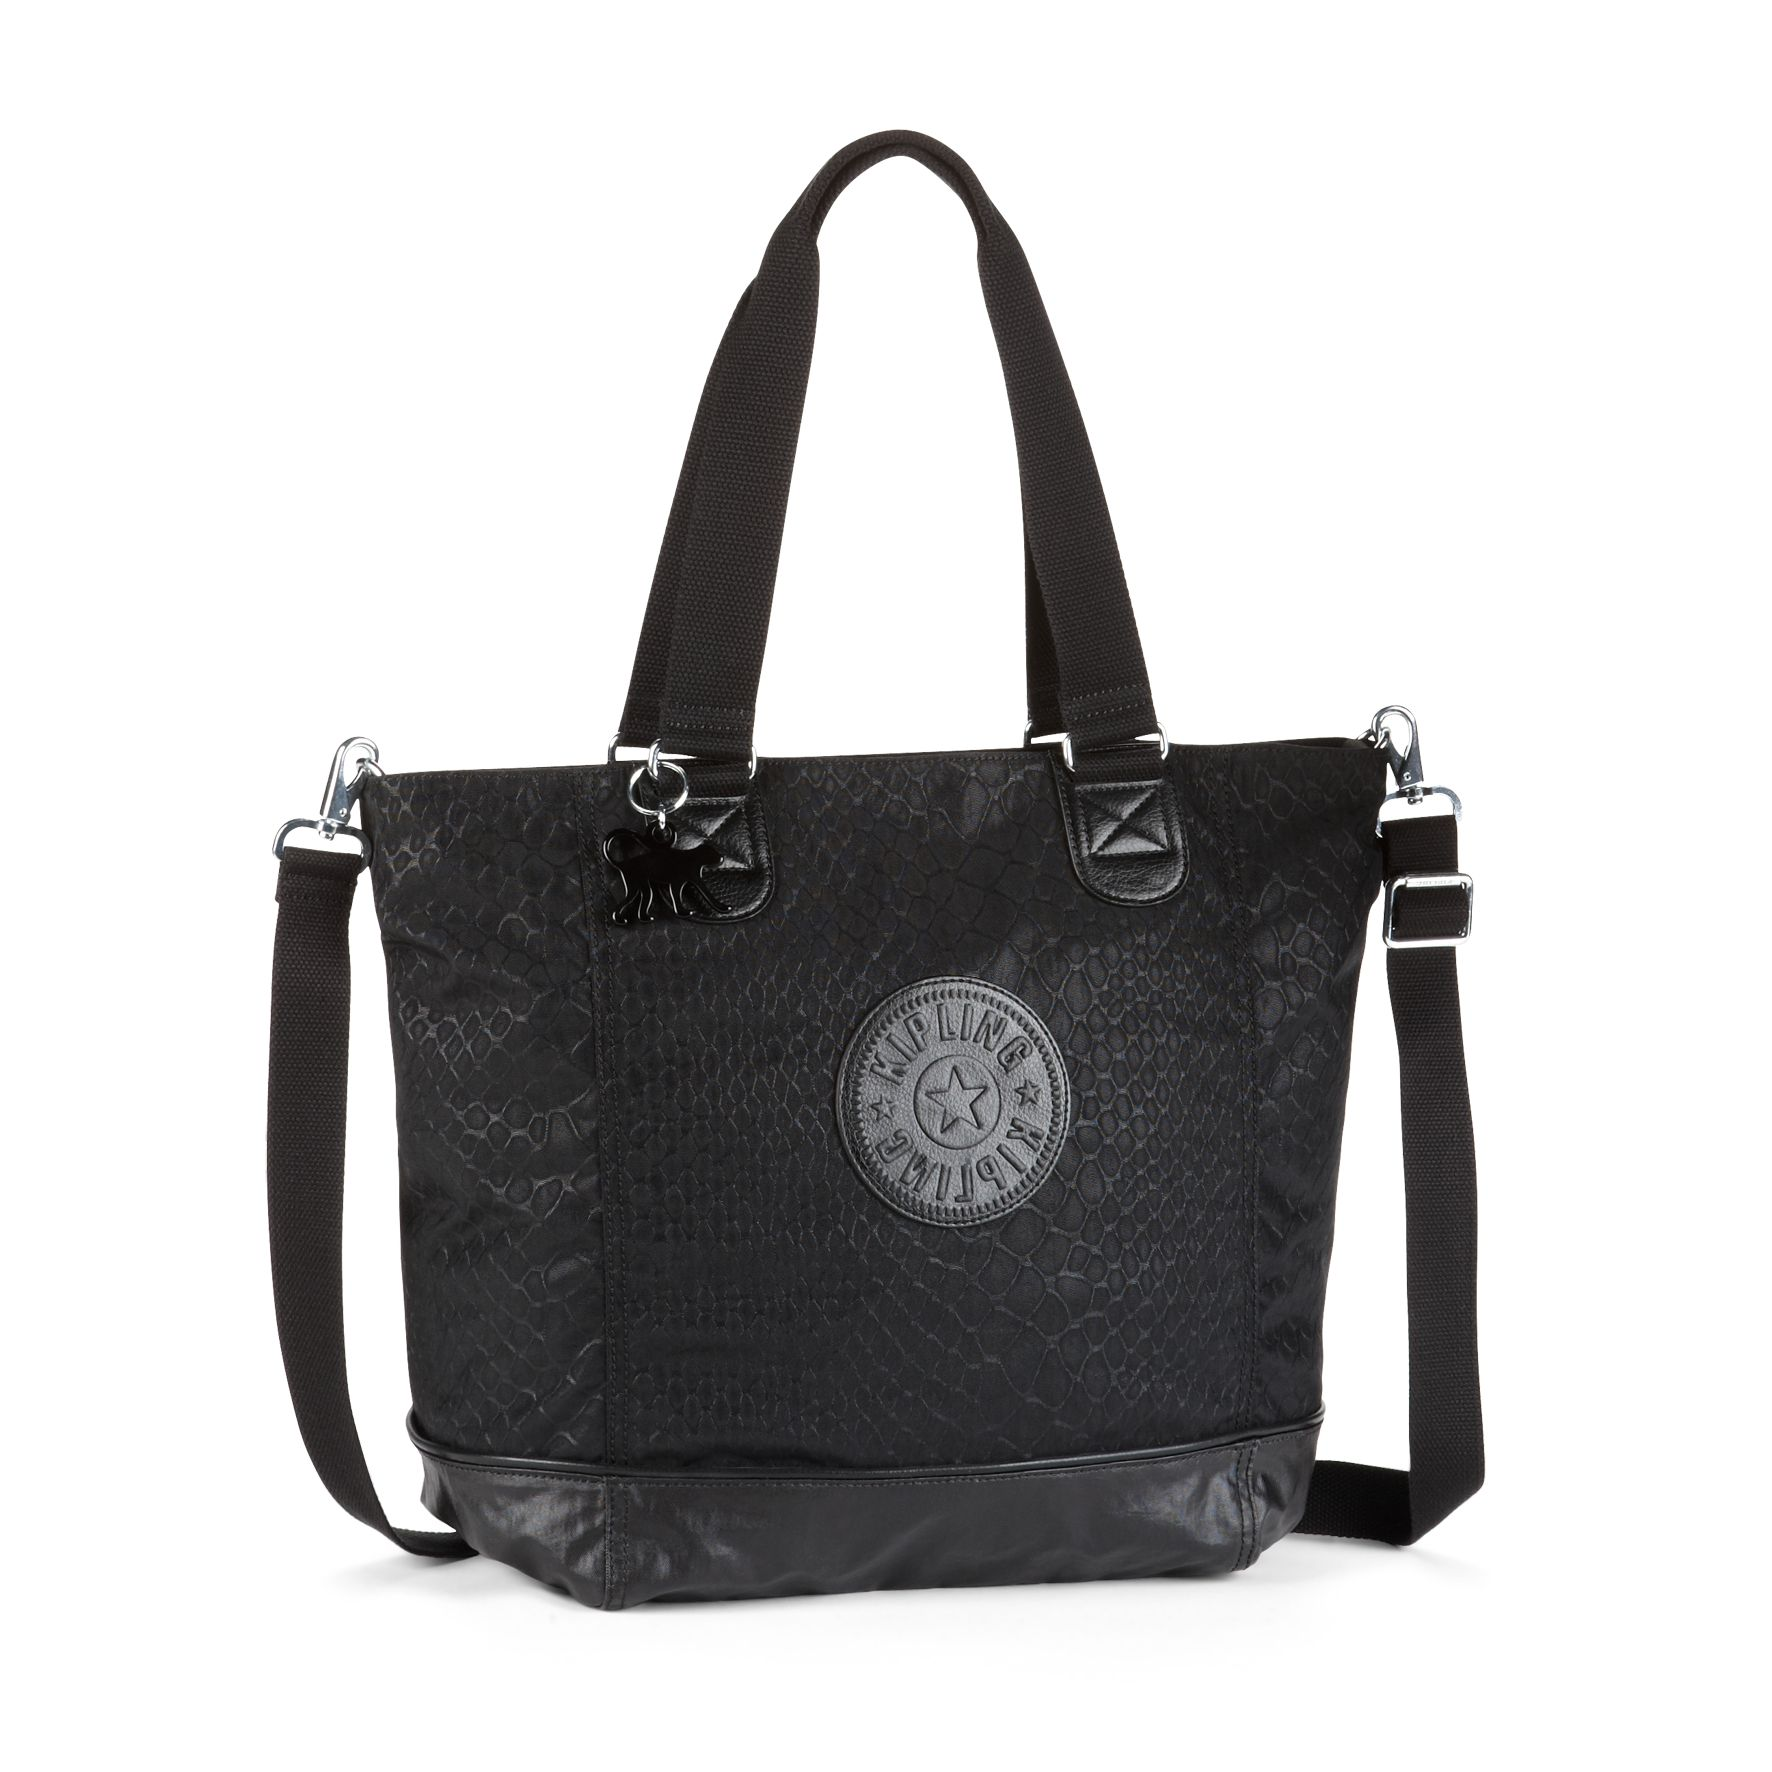 Kipling Shopper combo a4 shoulder bag